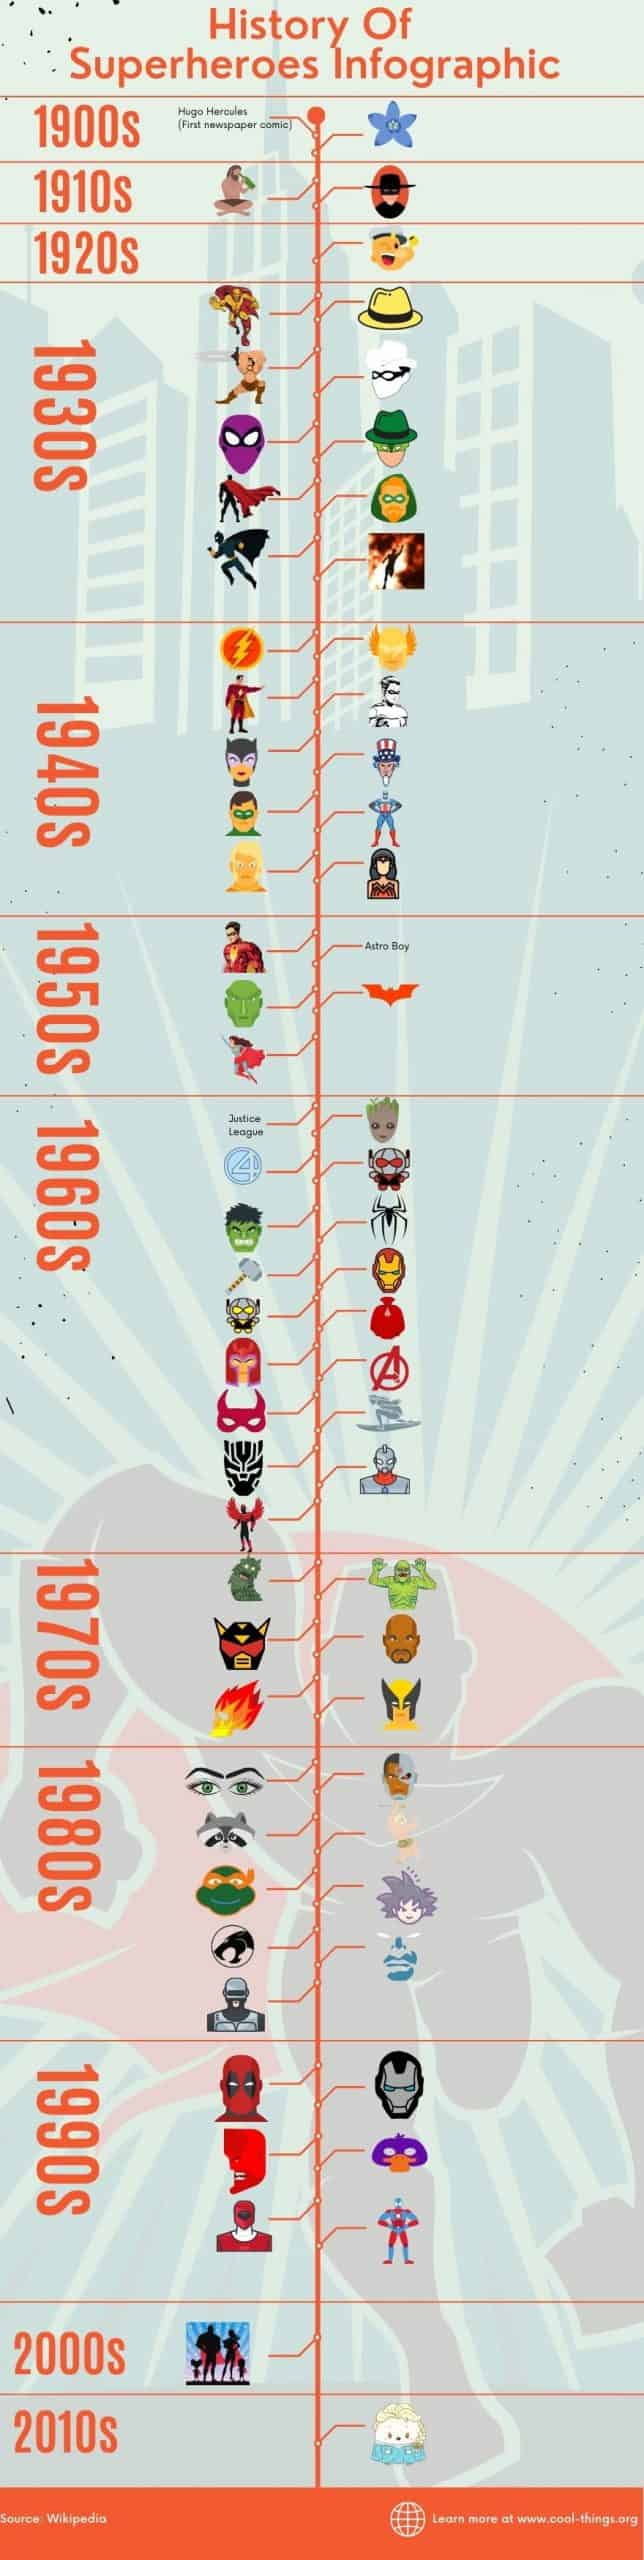 History Of Superheroes Infographic